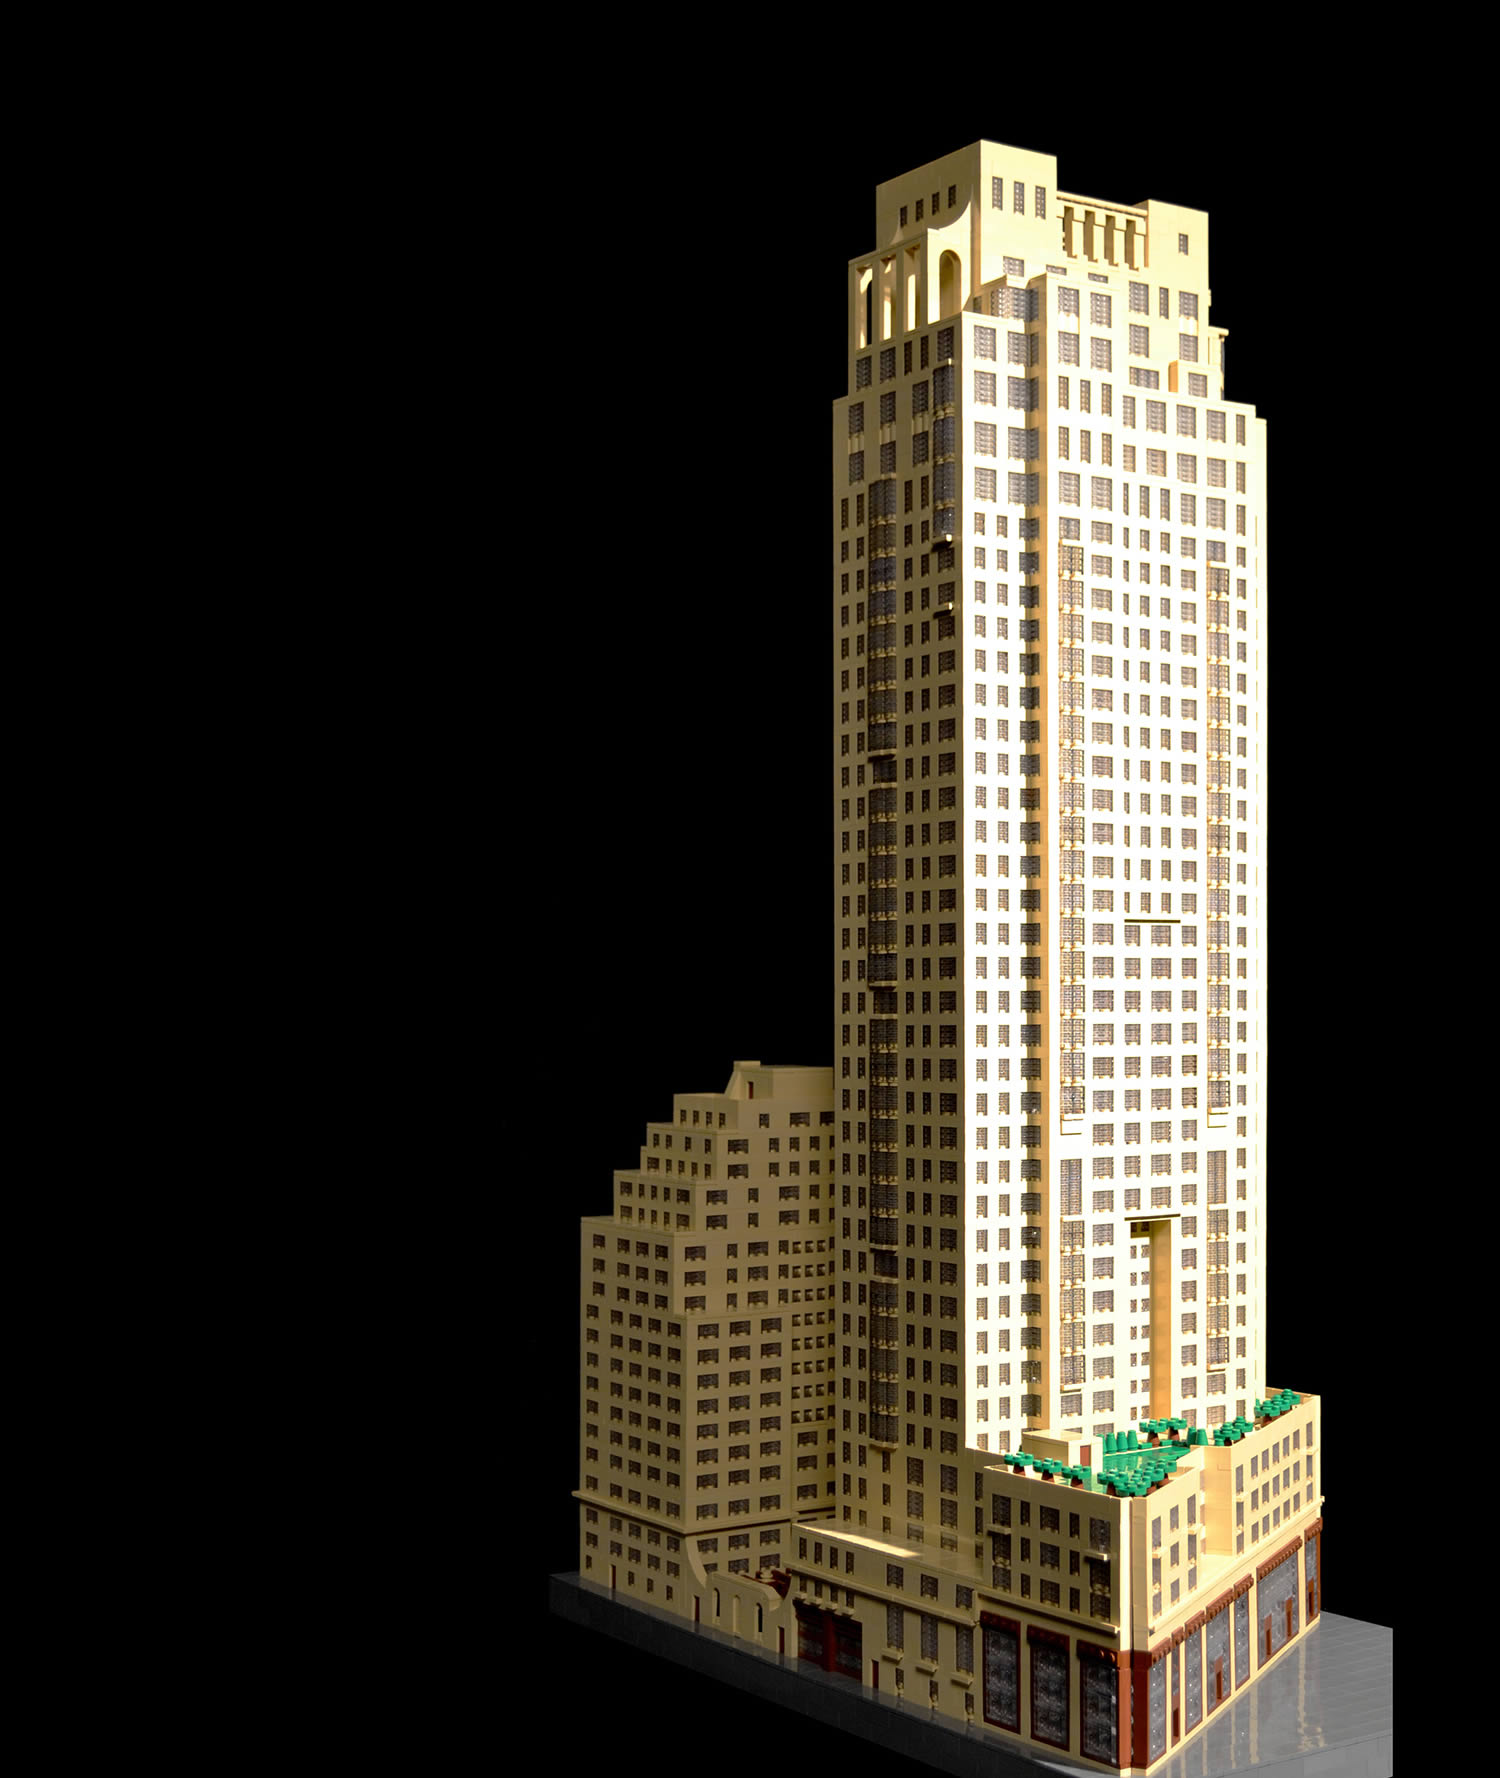 15 Central Park West, lego art, moc, by  Jonathan Grzywacz